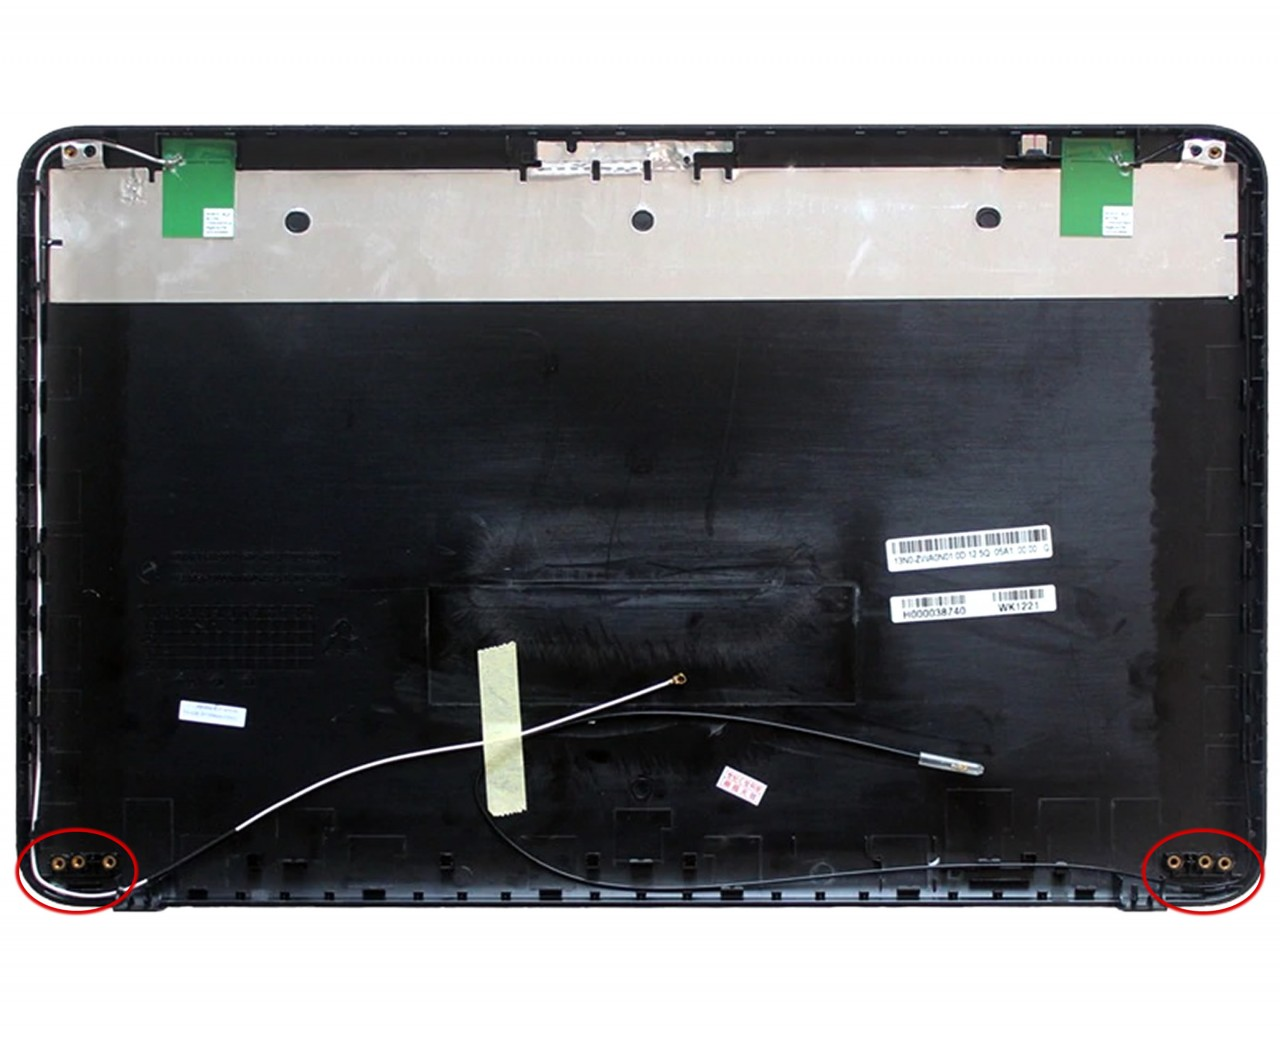 Capac Display BackCover Toshiba 13N0-ZWA1301 Carcasa Display Neagra cu 3 Suruburi Balamale imagine powerlaptop.ro 2021